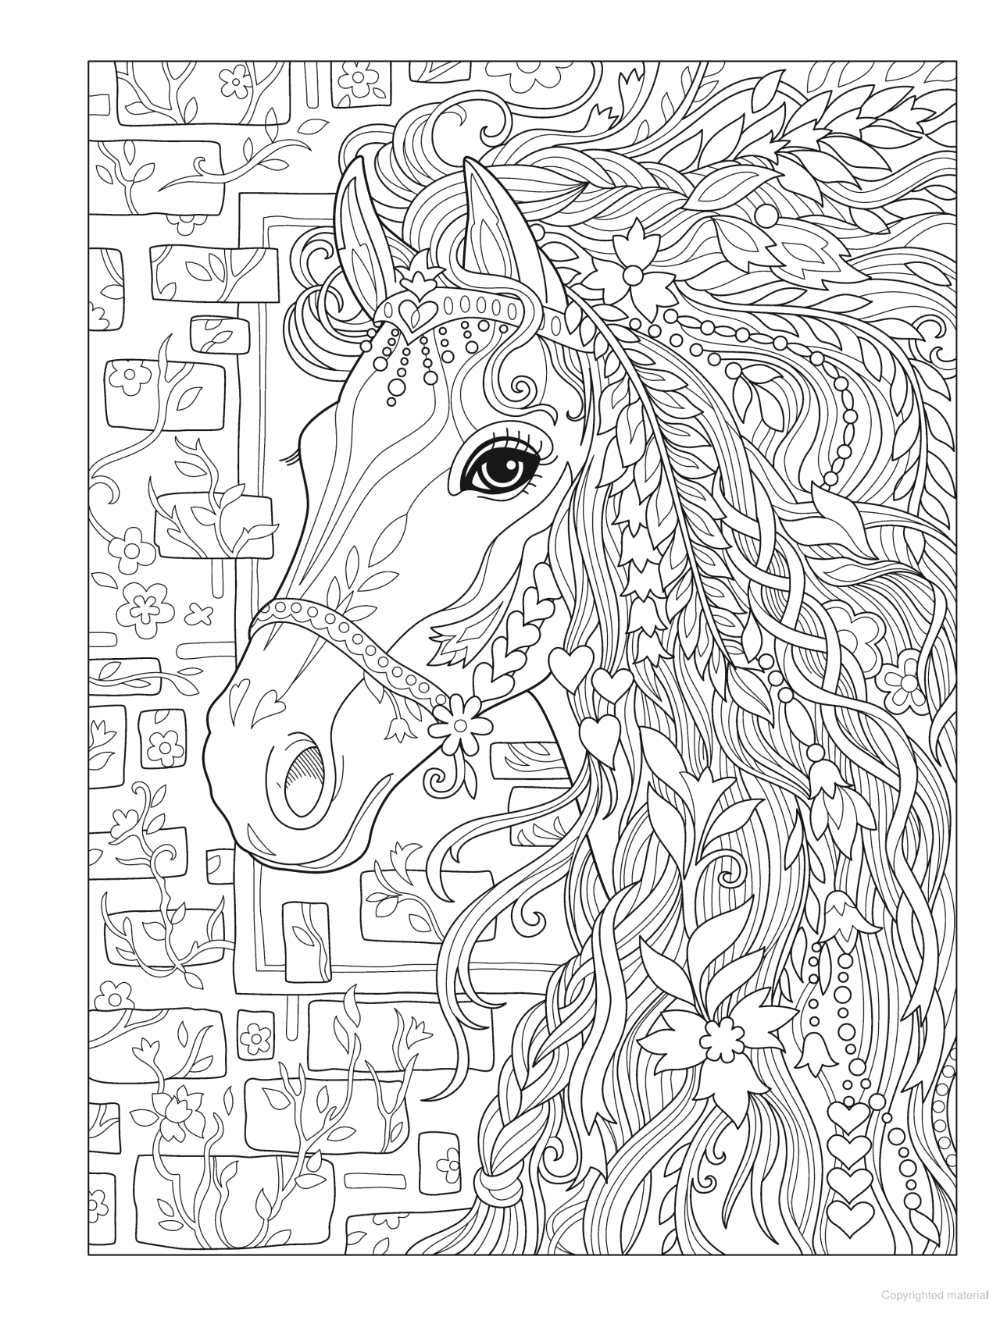 Creative Haven Dream Horses Coloring Book Horse Coloring Pages Horse Coloring Books Animal Coloring Pages [ 1317 x 1000 Pixel ]